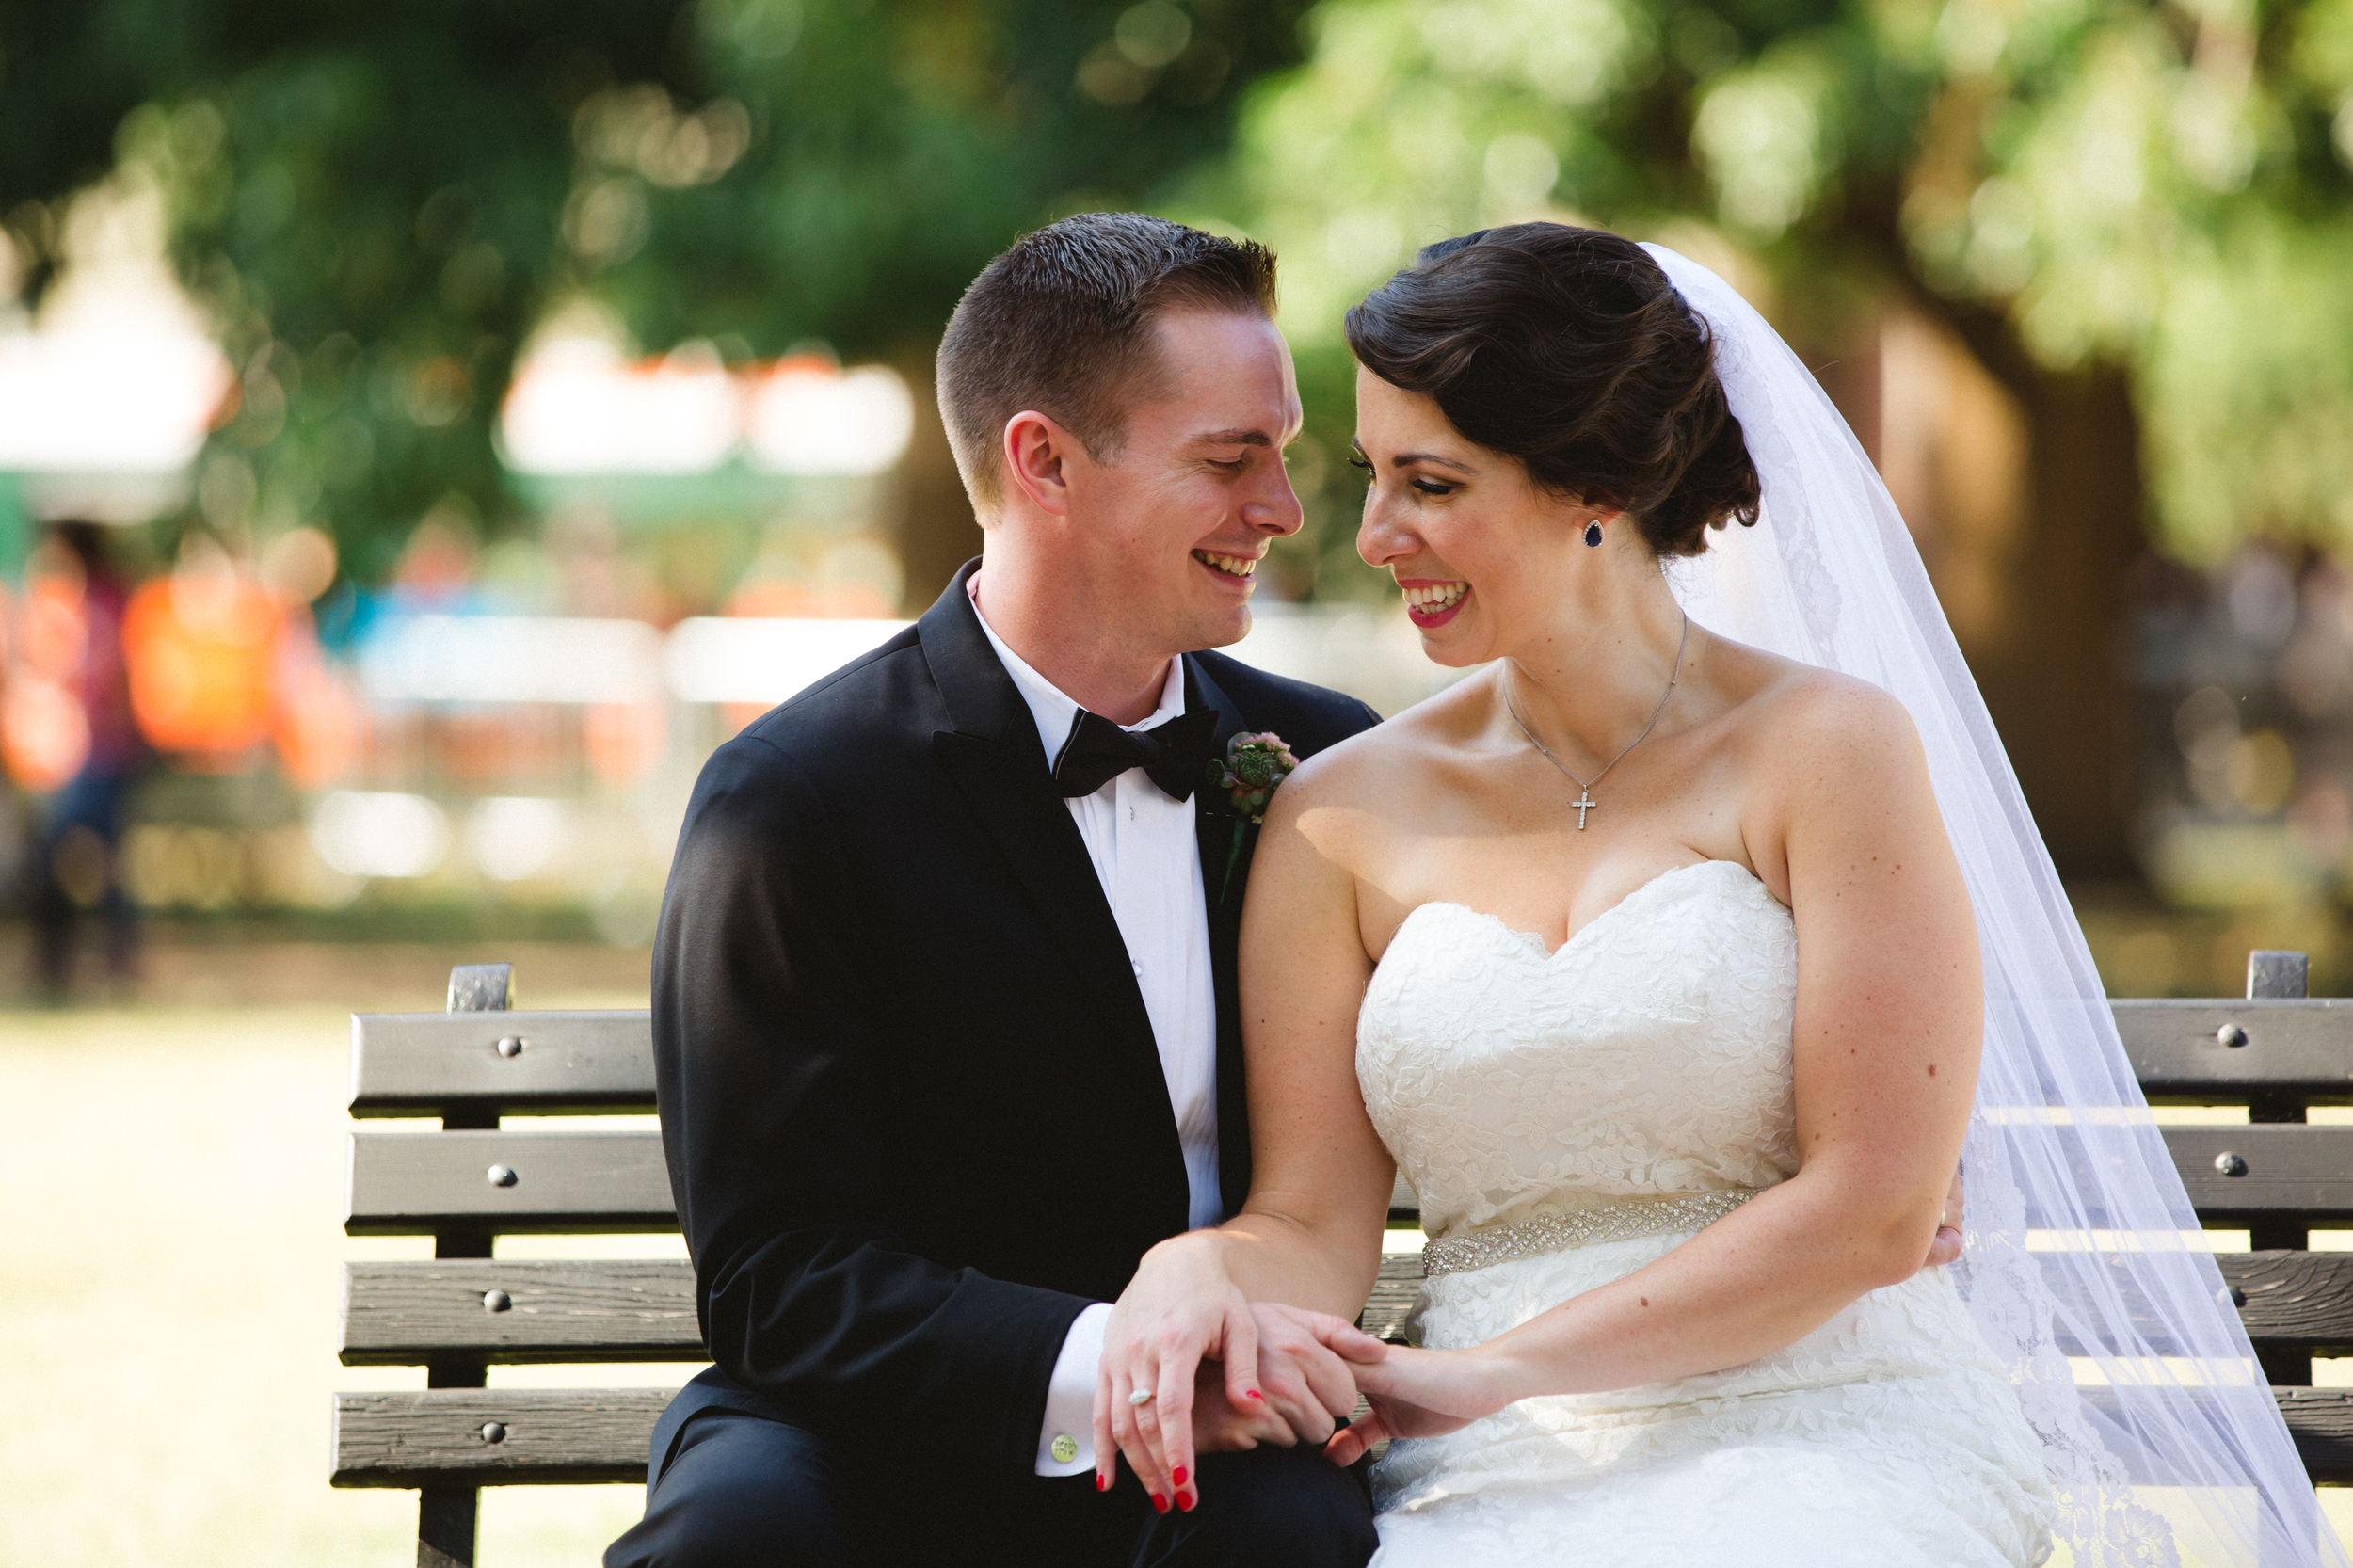 Vness_Photography_Wedding_Photographer_Washington-DC_Fish_Wedding-546.JPG